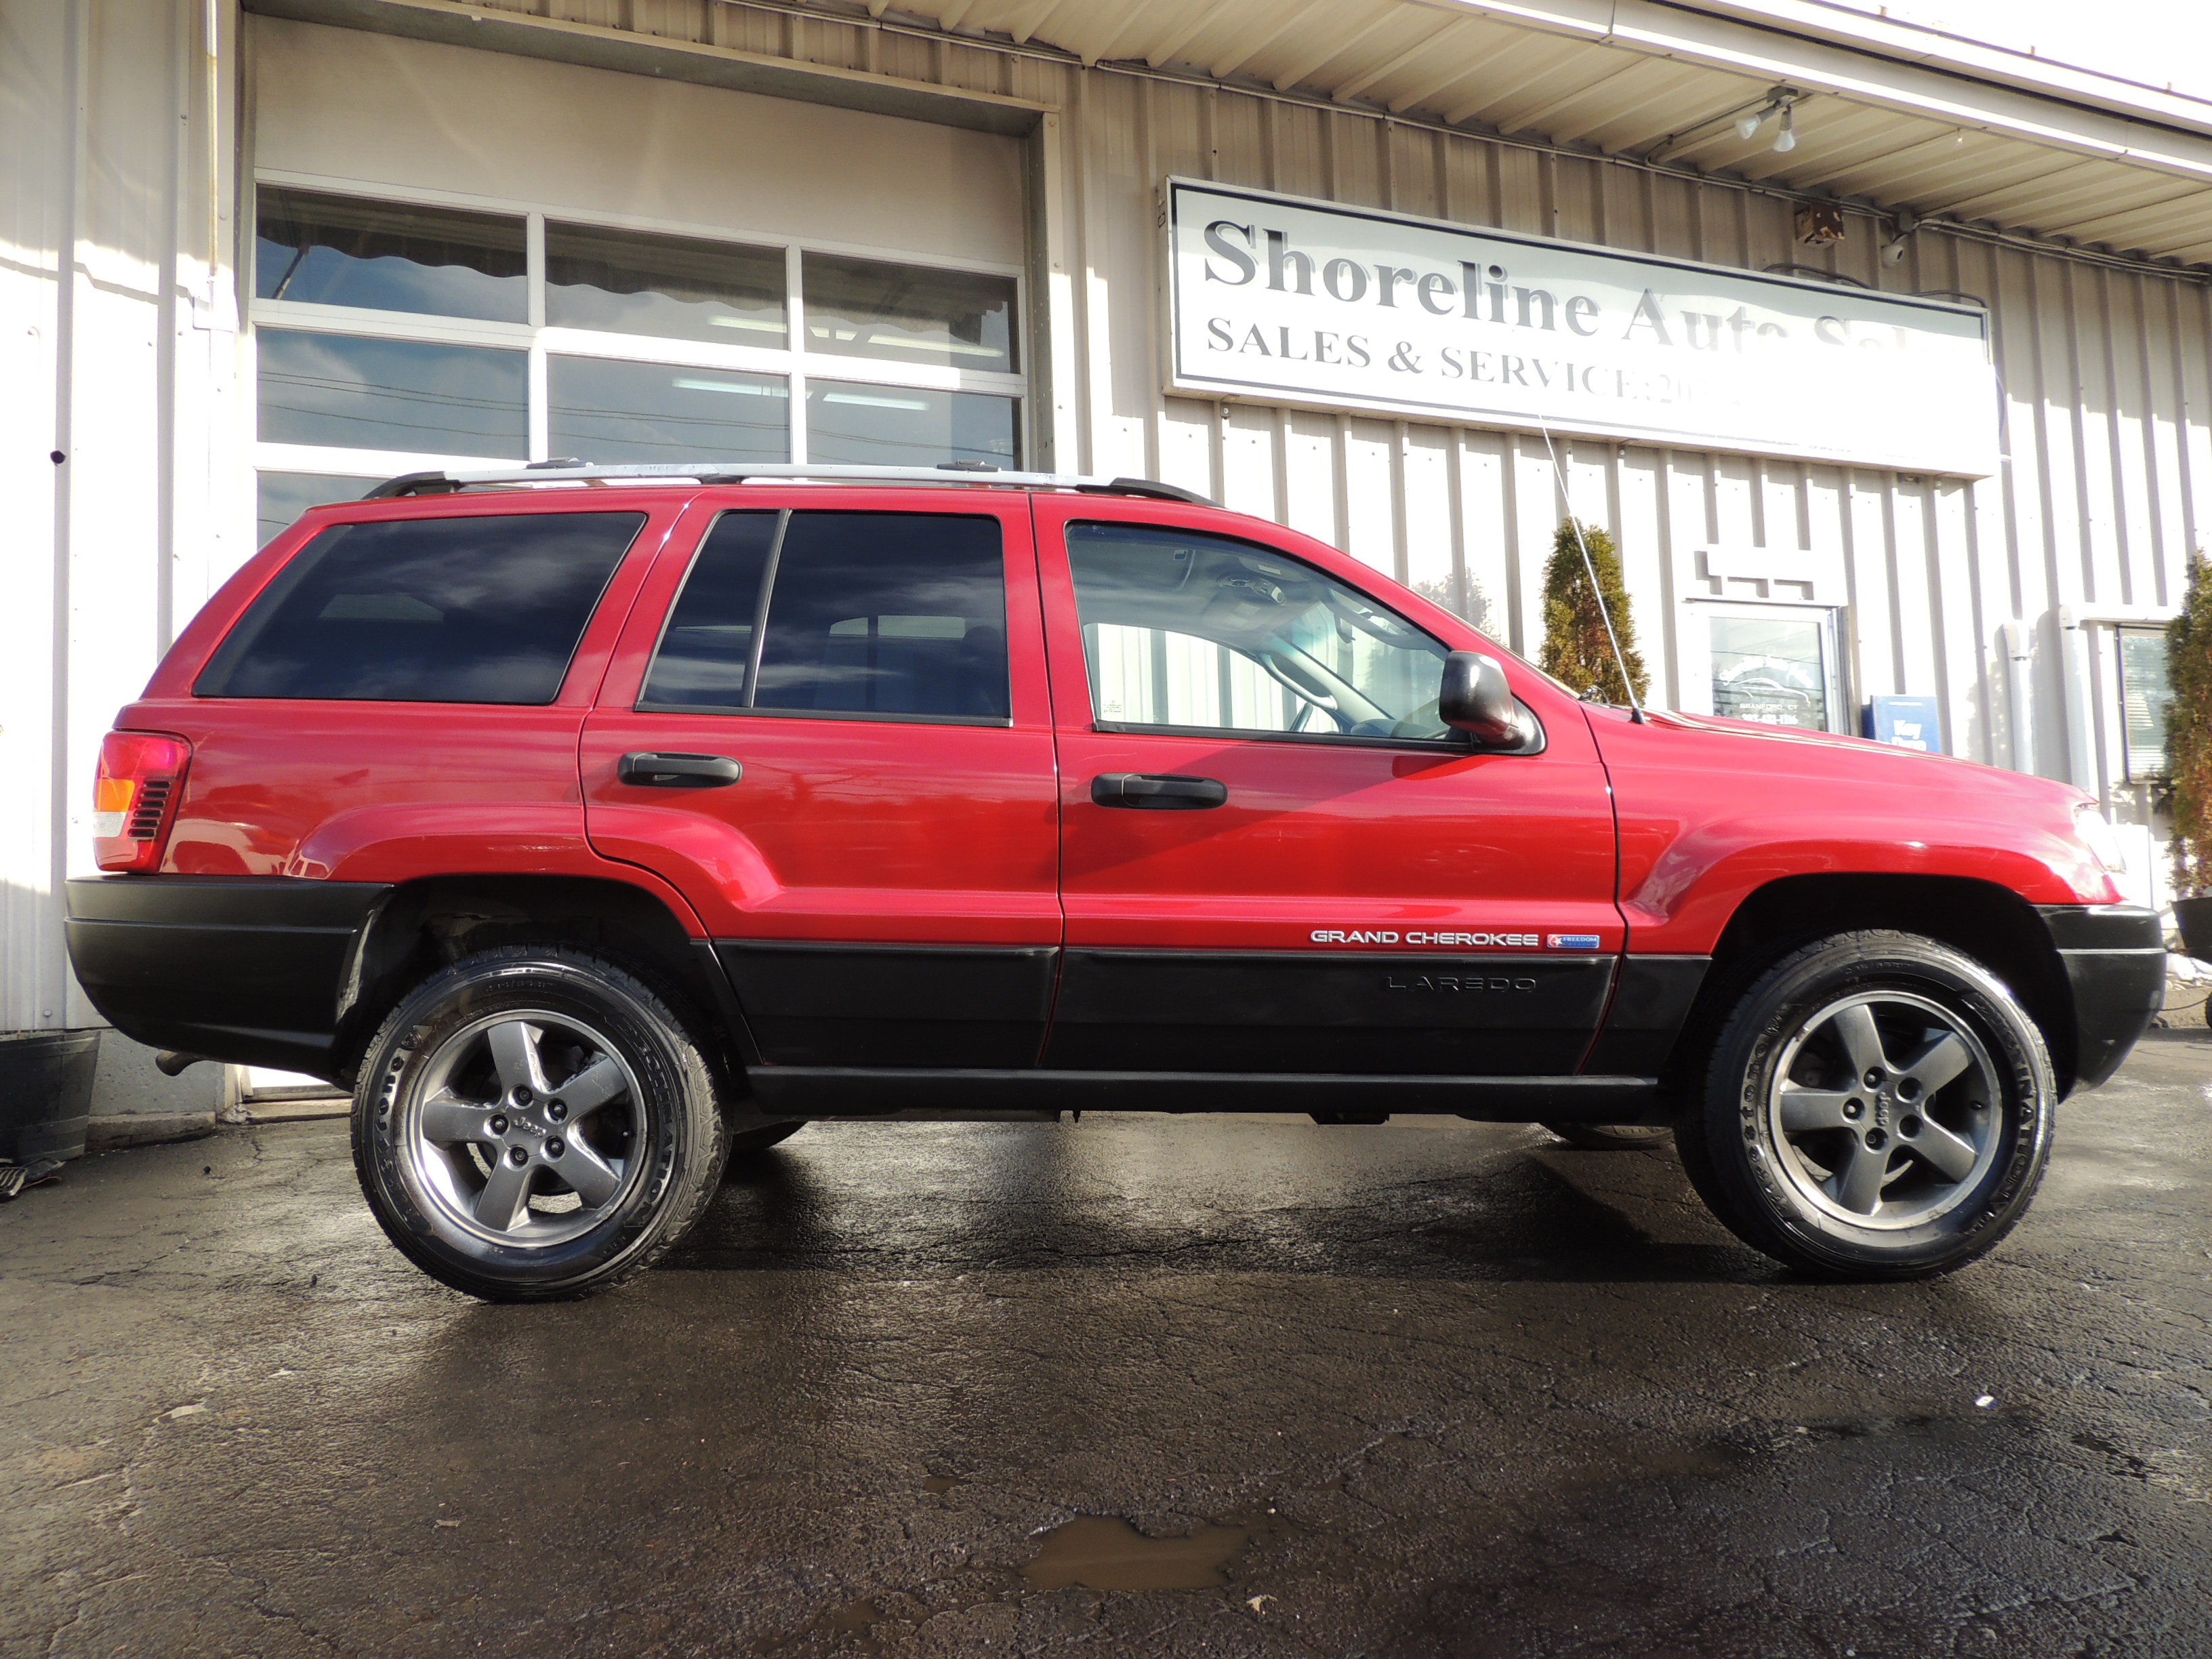 2004 jeep grand cherokee freedom edition shoreline auto sales. Black Bedroom Furniture Sets. Home Design Ideas